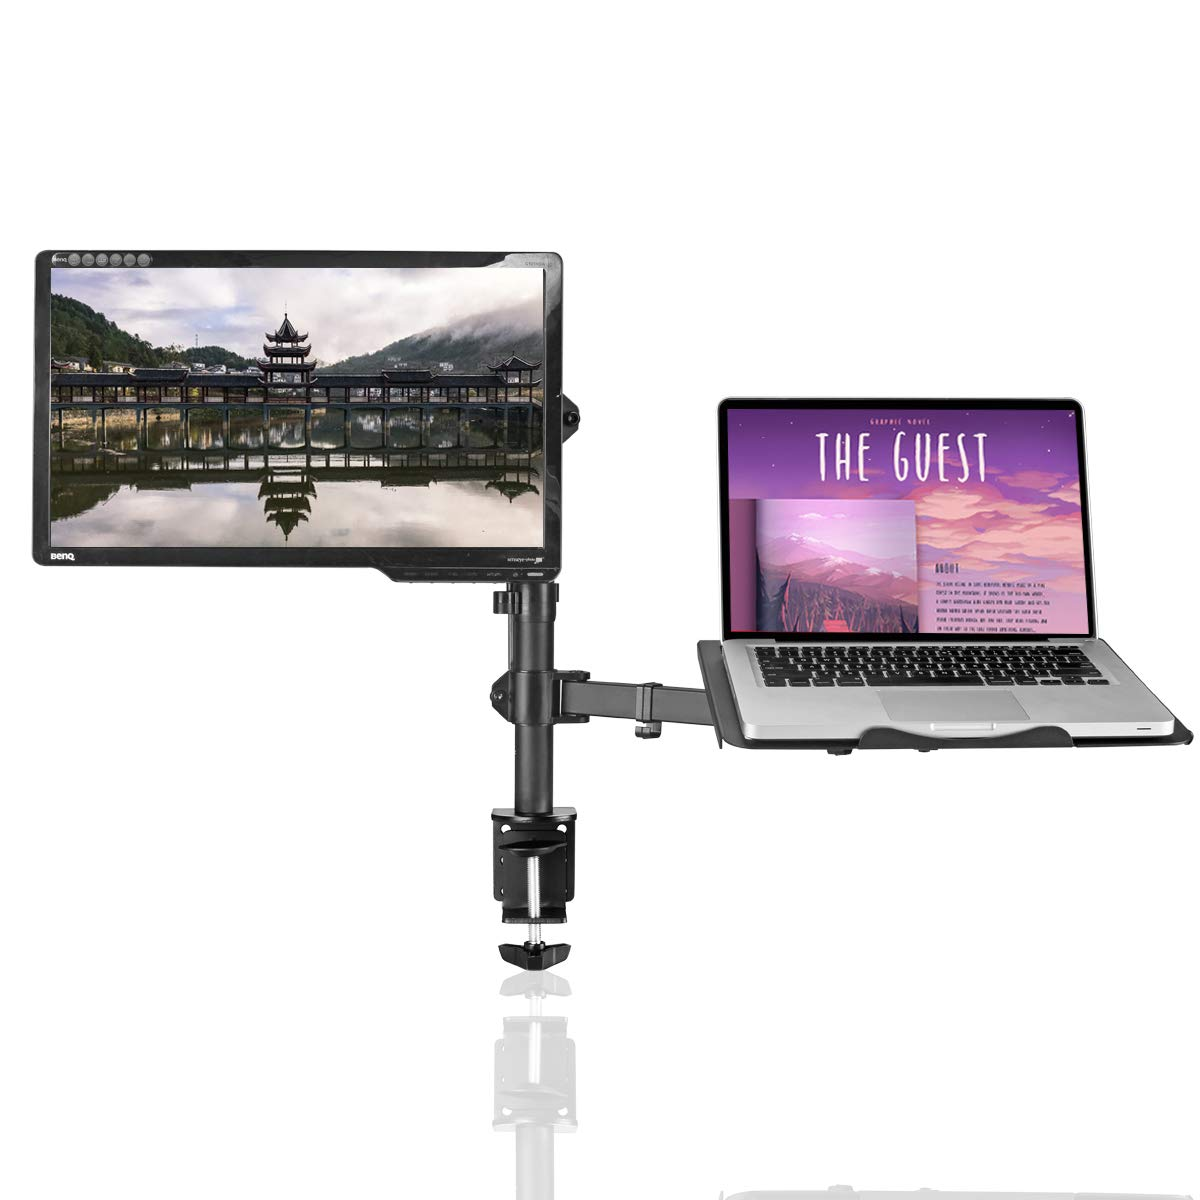 Suptek Full Motion Computer Monitor and Laptop Riser Desk Mount Stand, Height Adjustable (400mm), Fits 13-27 inch Screen and up to 17 inch Notebooks, VESA 75/100, up to 22lbs for Each (MD6432TP004)